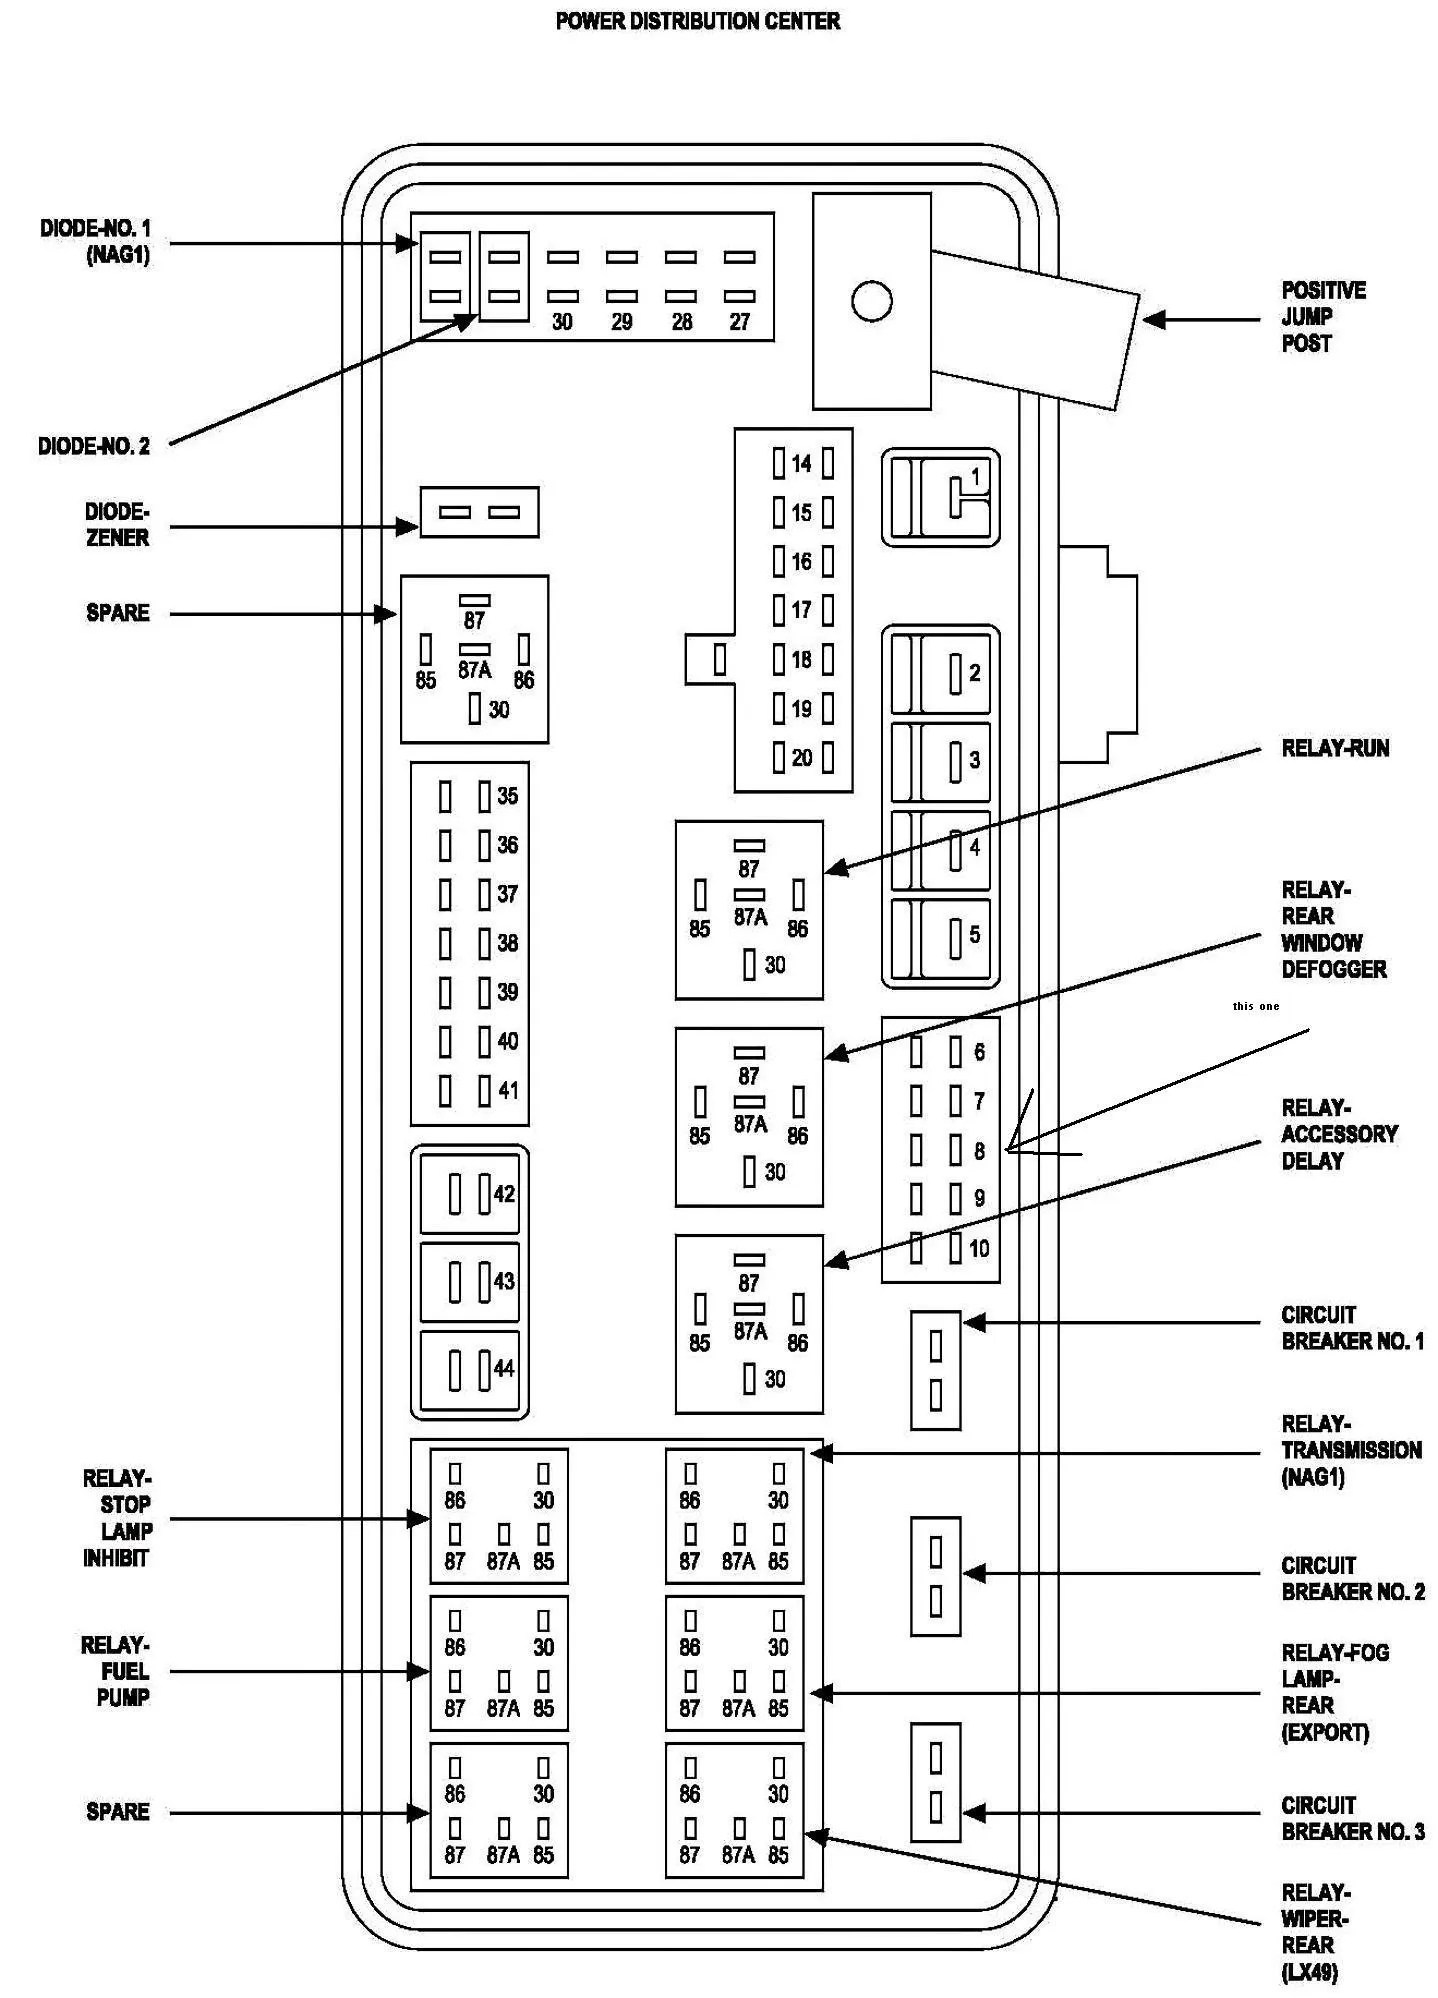 hight resolution of 2012 dodge challenger fuse diagram simple wiring diagram schemachallenger fuse box diagram simple wiring diagram 2012